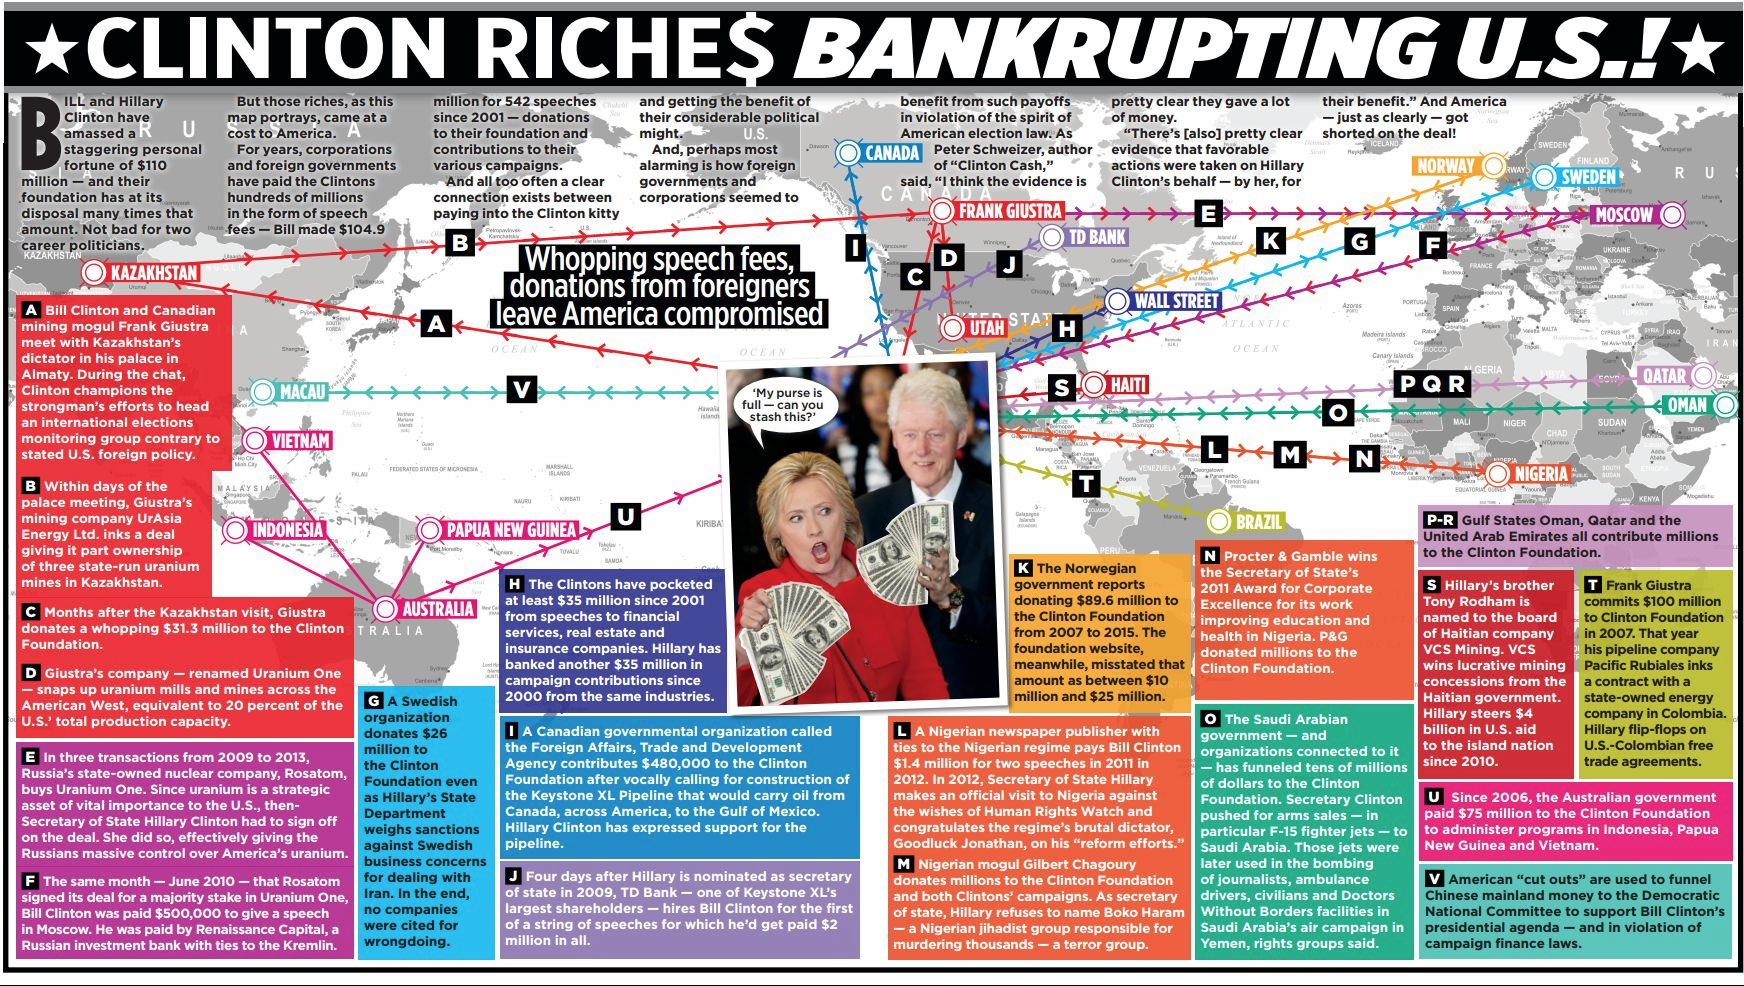 Clinton riches bankrupting U.S.